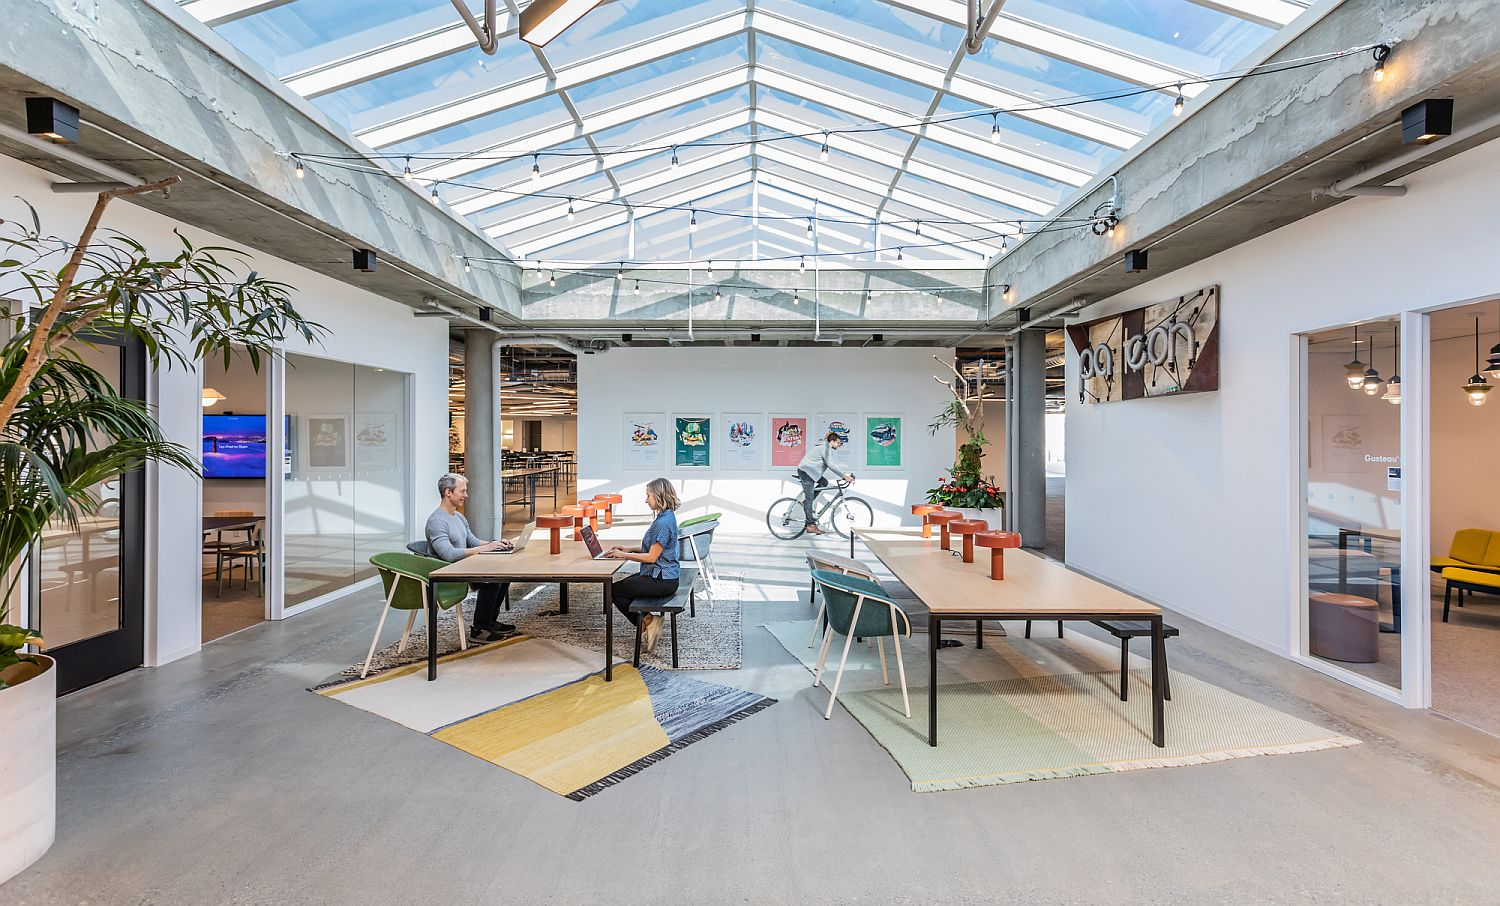 1565874915 241 spacious contemporary minimal office in san francisco feels casual and classy - Spacious Contemporary-Minimal Office in San Francisco Feels Casual and Classy